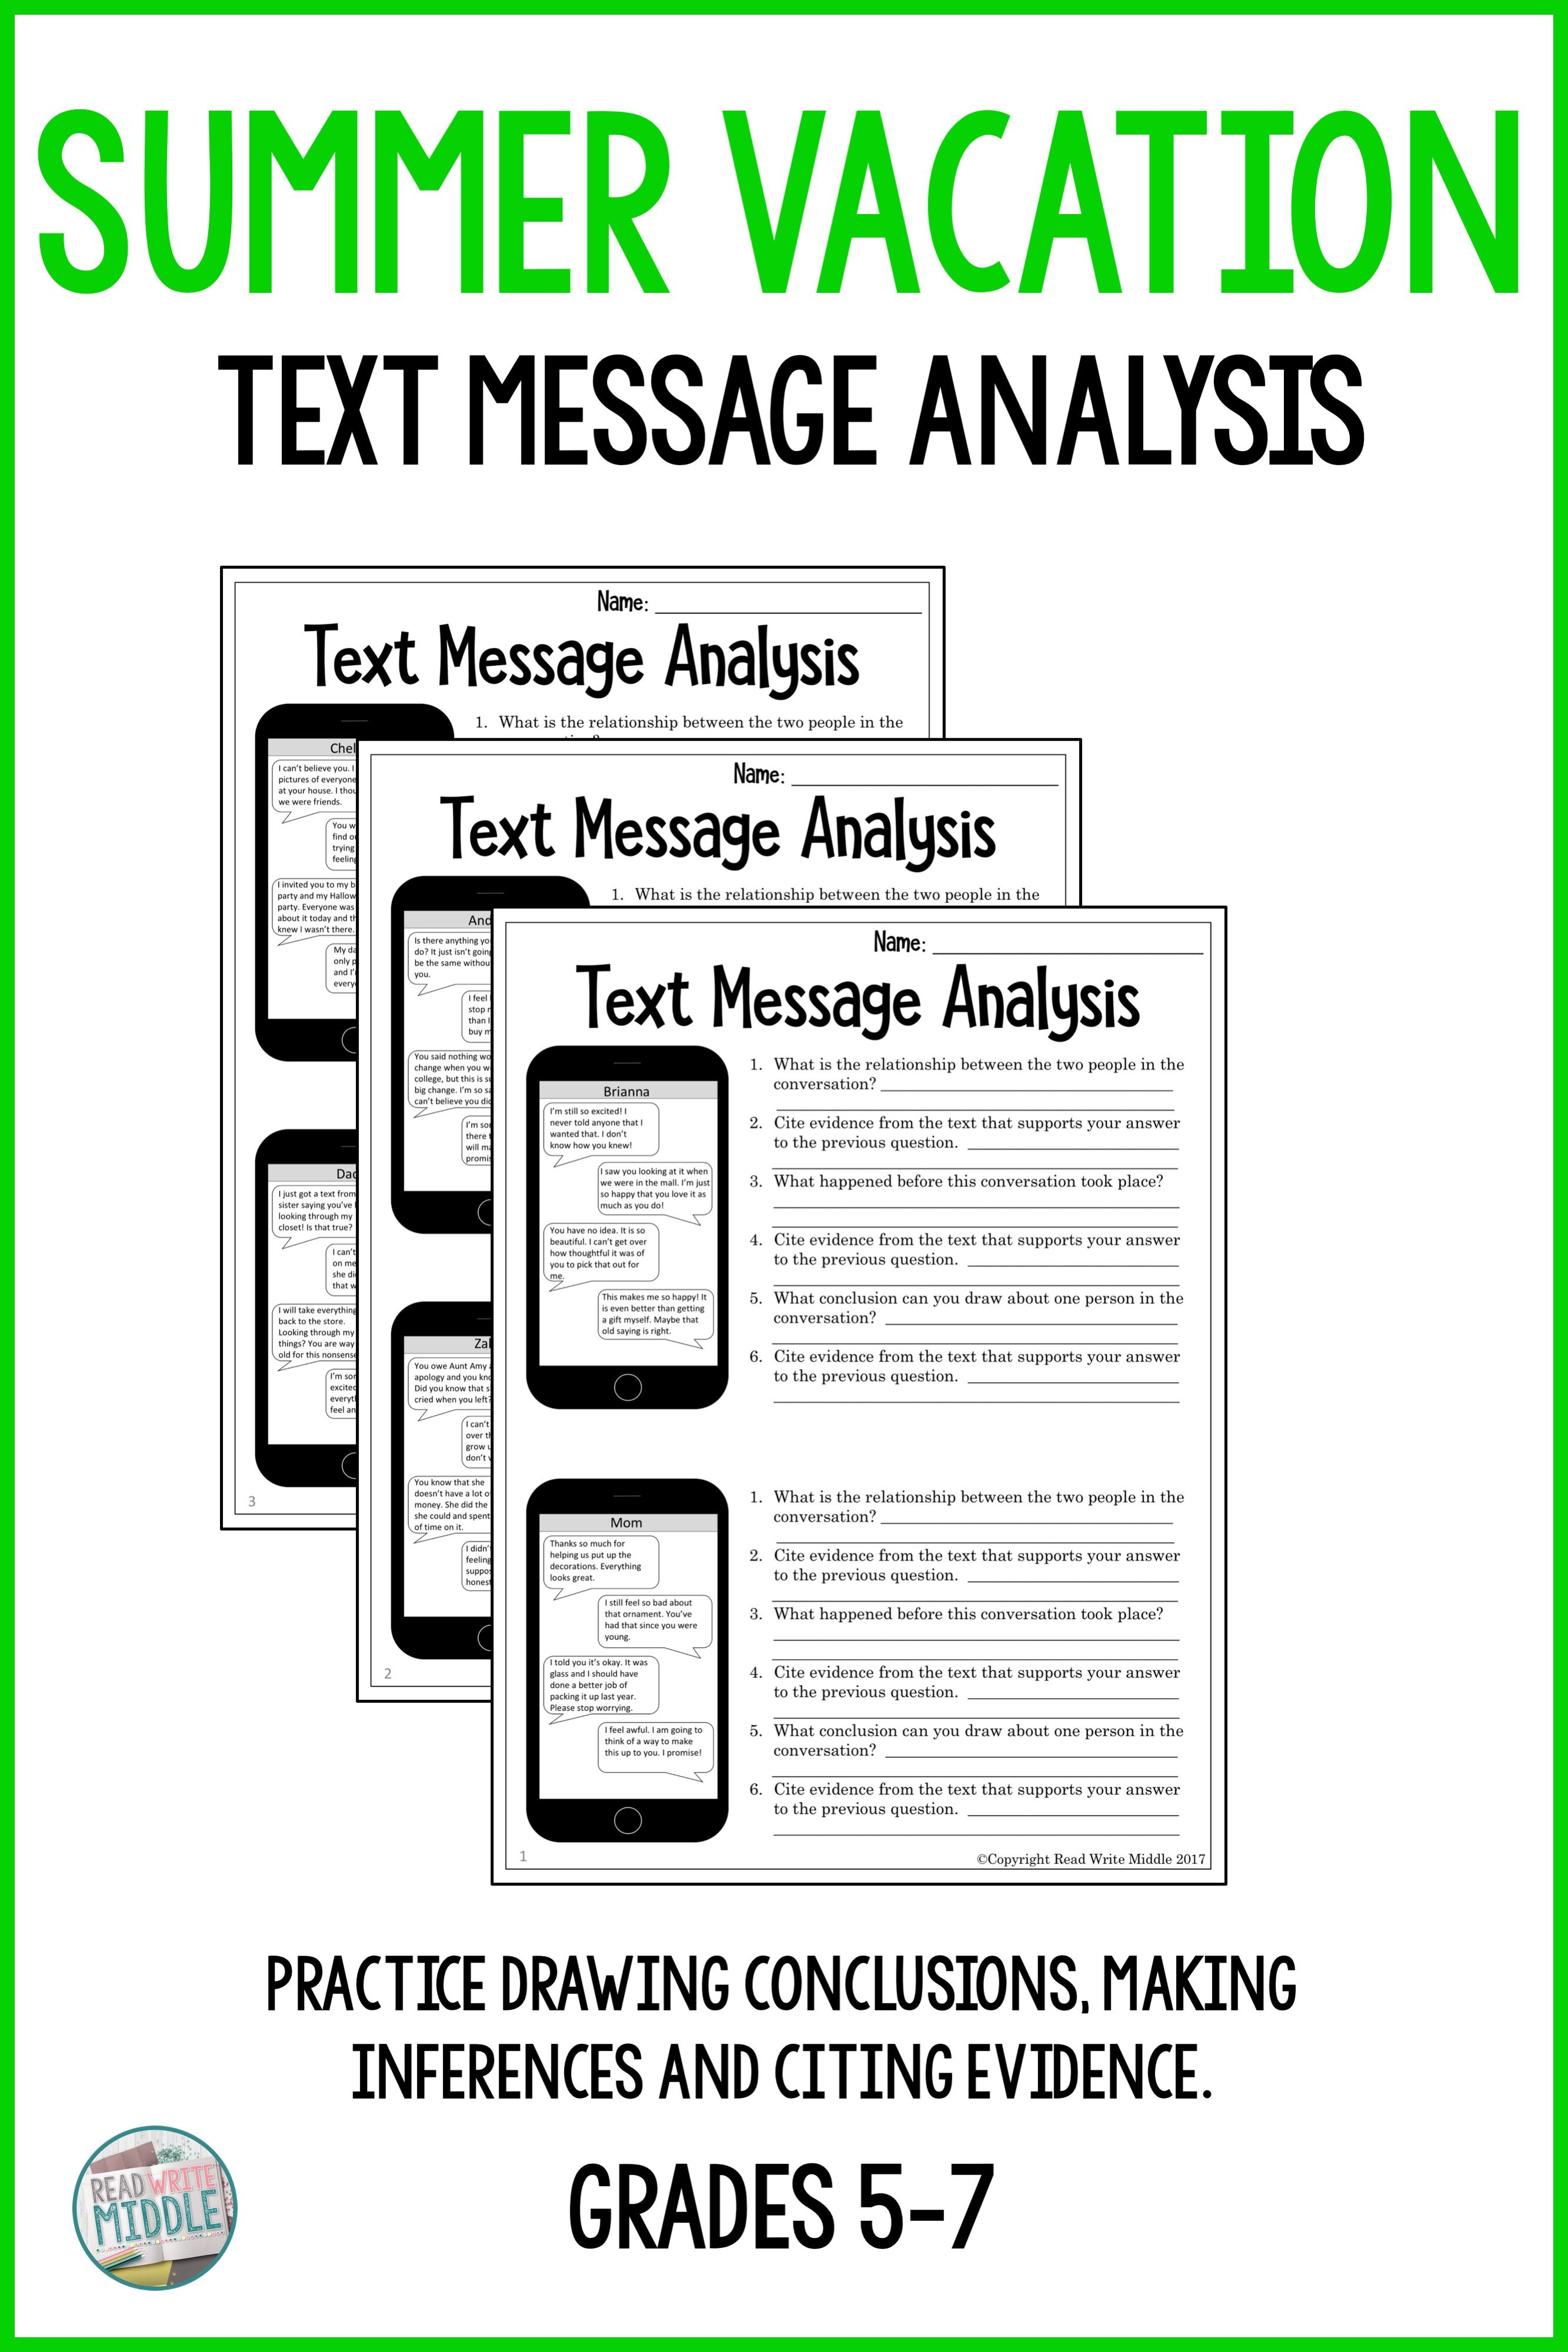 Summer Vacation Text Messageysis Inferencing Amp Citing